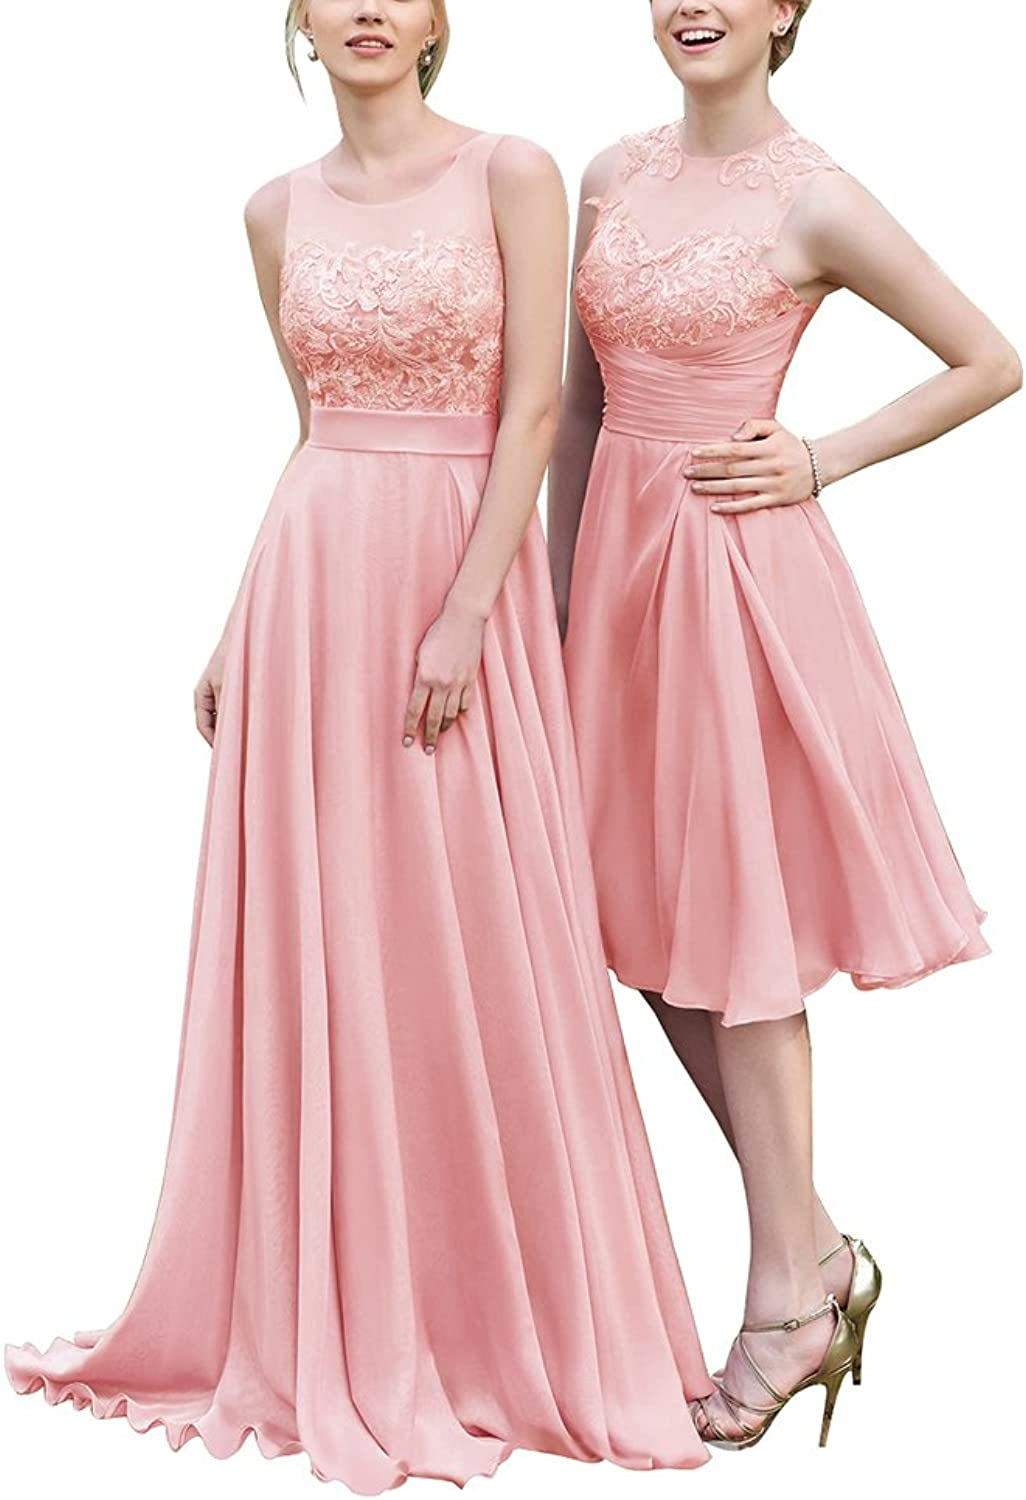 Hatail Long Bridesmaid Dress Backeless Lace Applique A Line Prom Evening Gown for